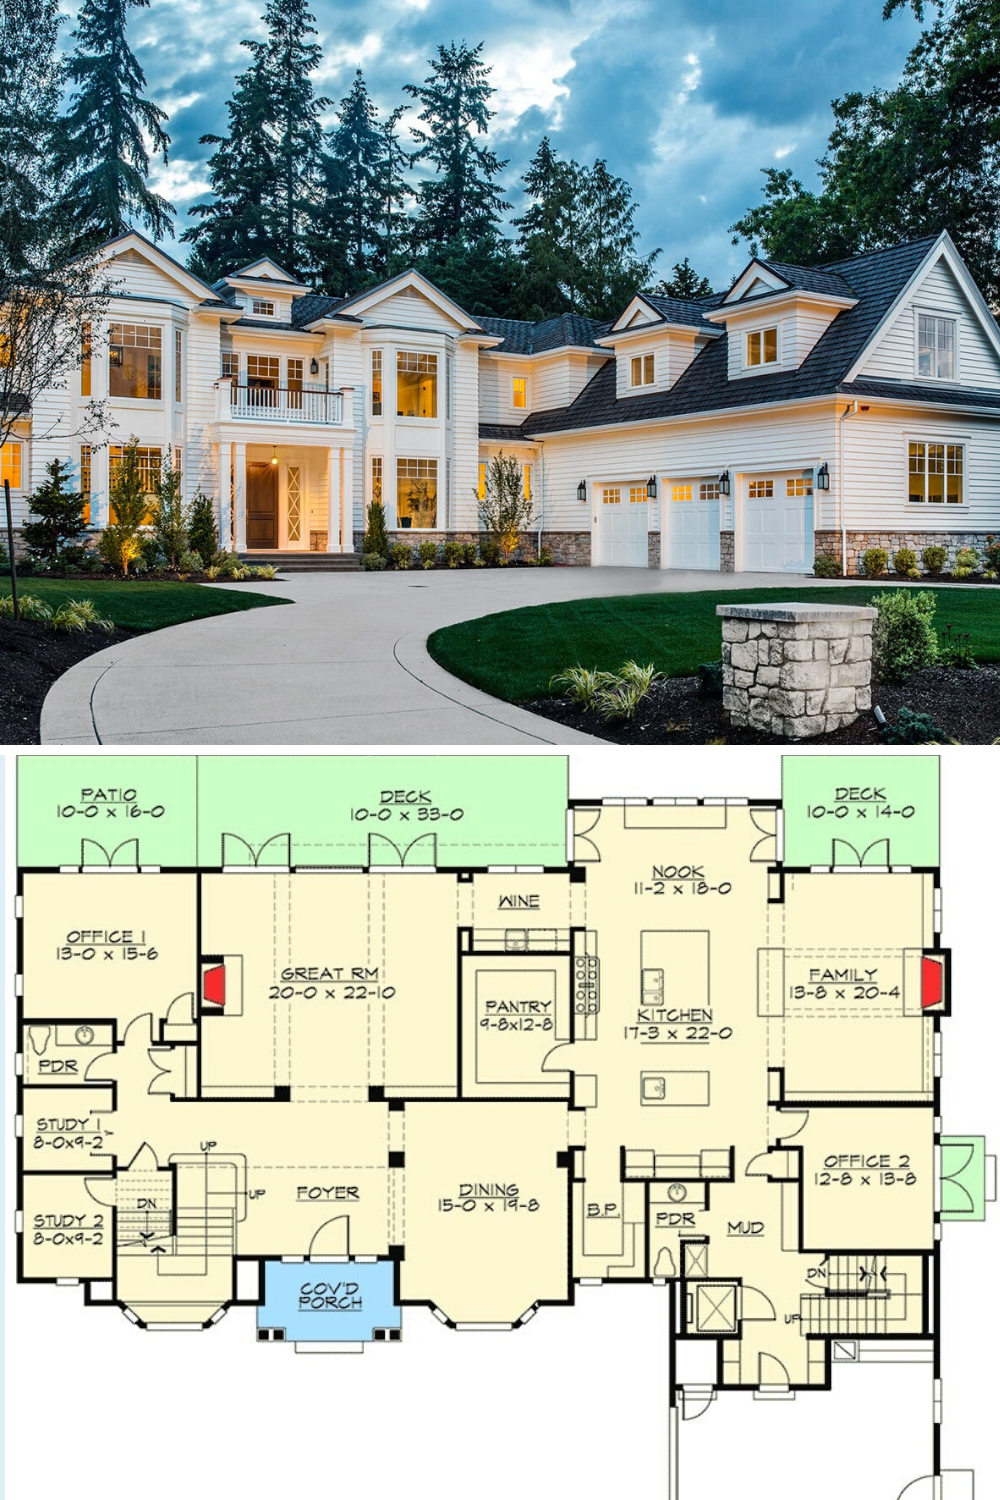 Two Story 5 Bedroom Traditional Colonial Home Floor Plan Colonial House Plans Family House Plans Dream House Plans